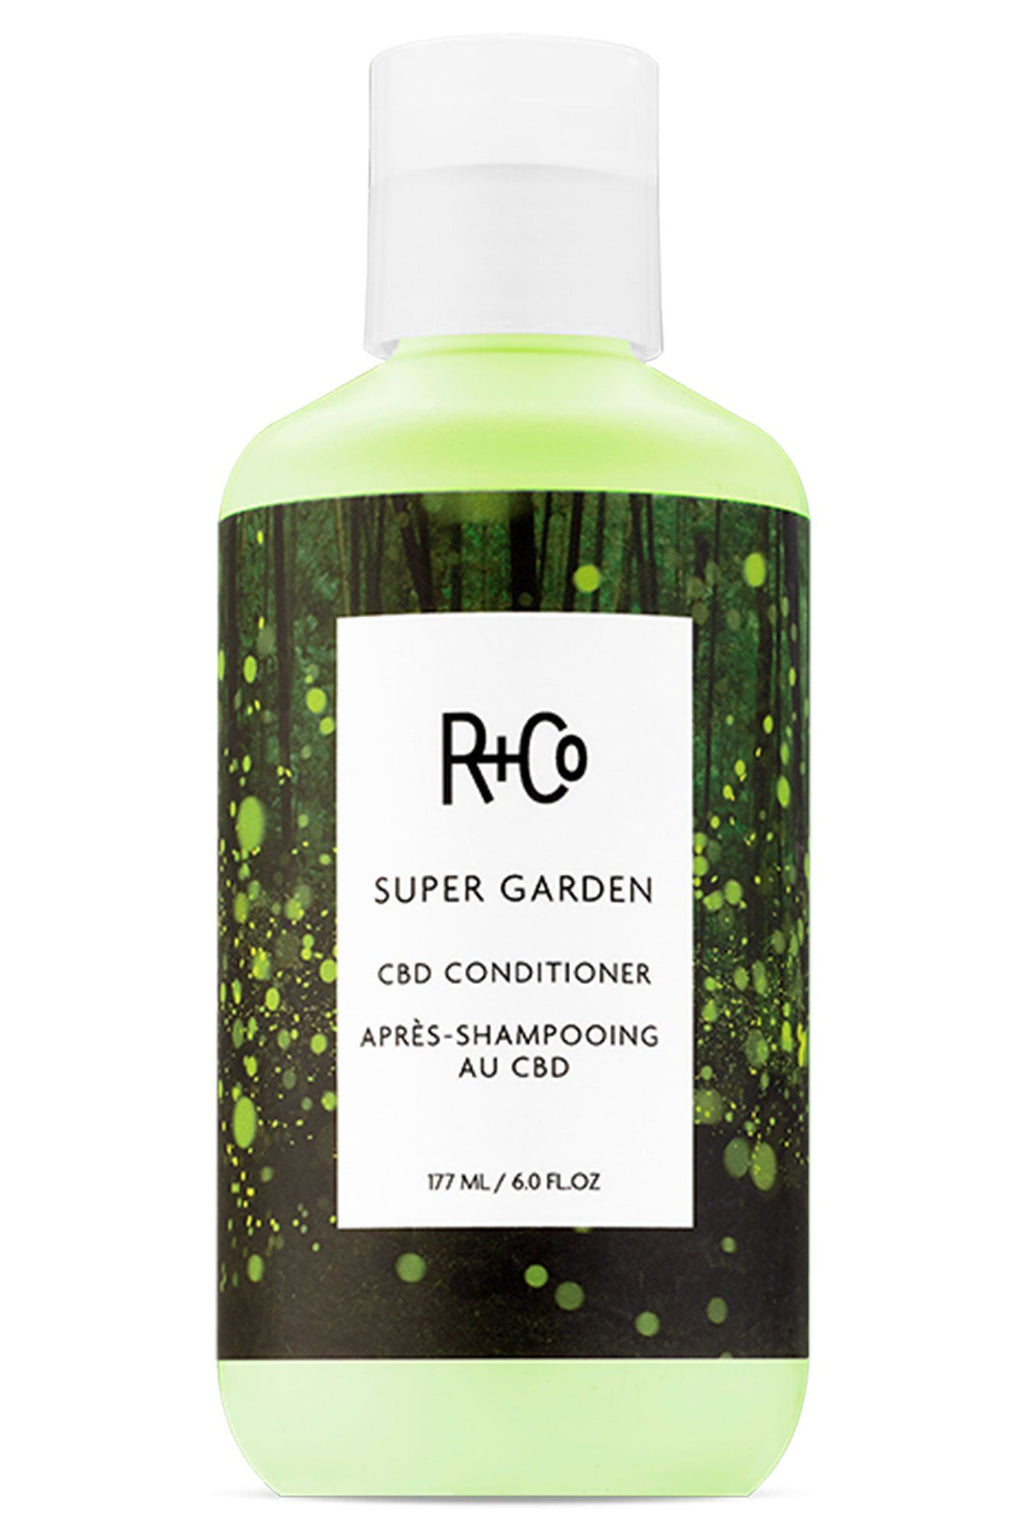 R+CO | Super Garden CBD Conditioner